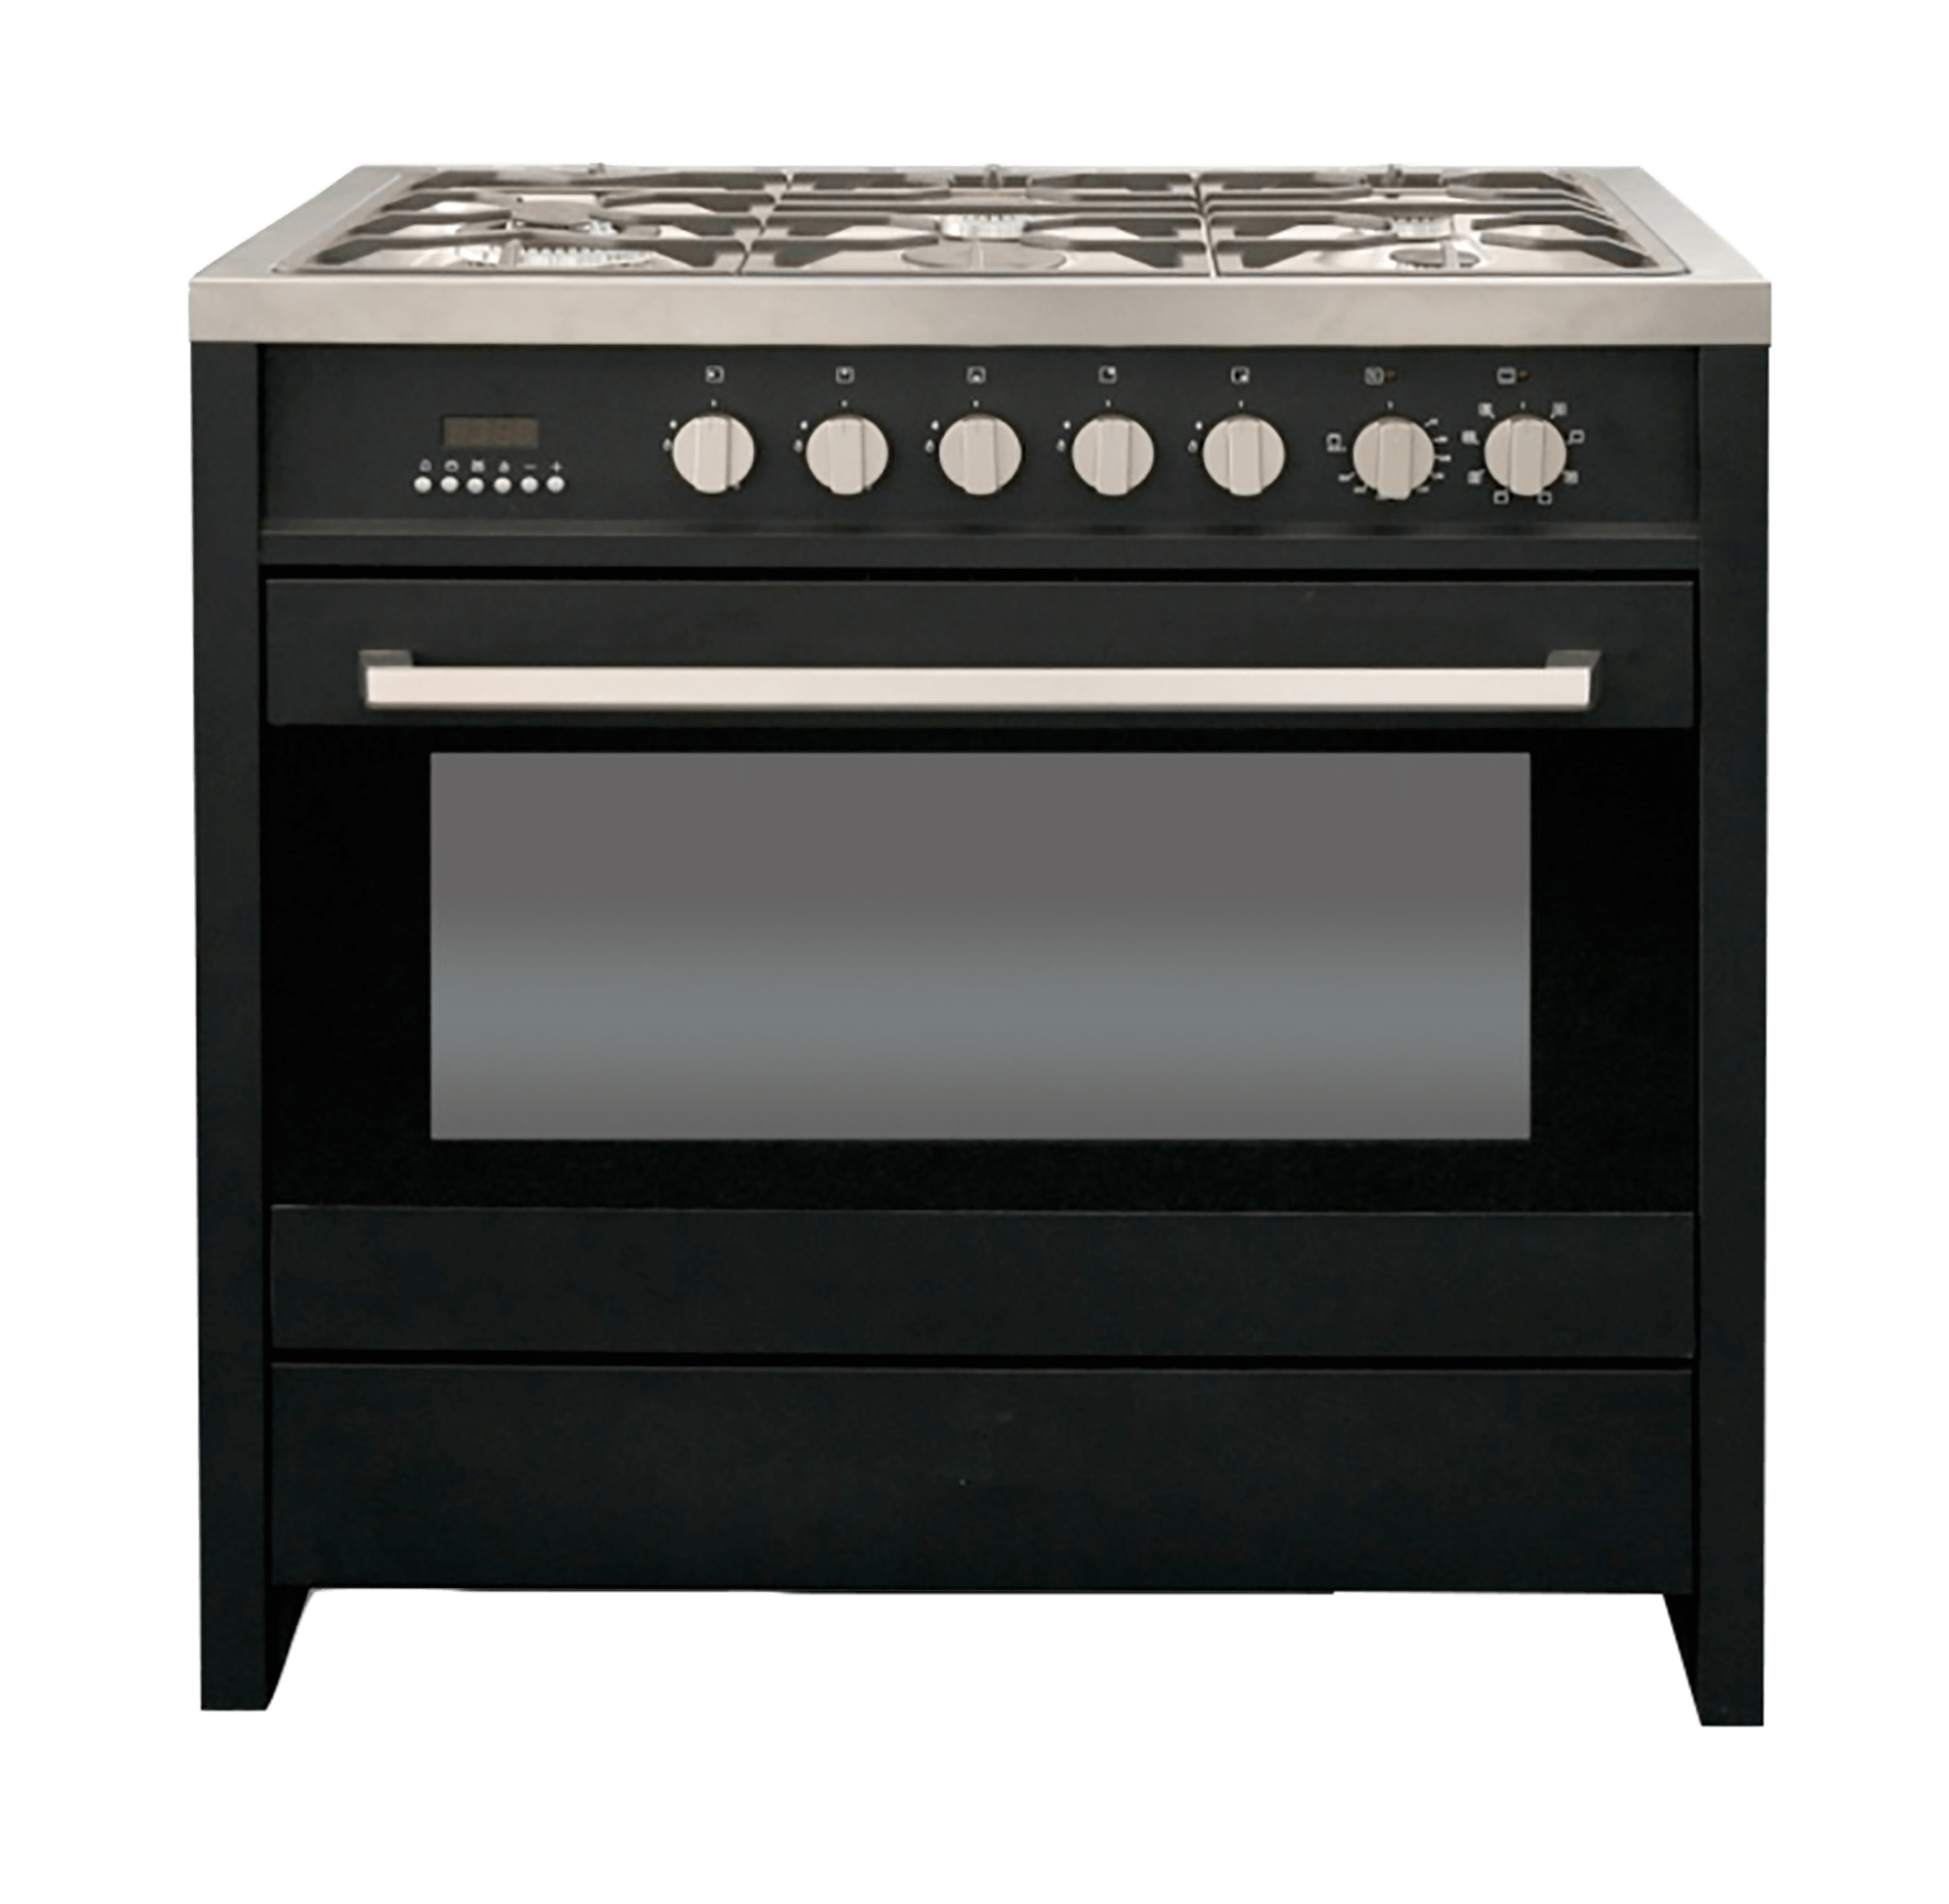 KELVINATOR GAS ELECTRIC STOVE (BLACK) MODEL: KC9650BL